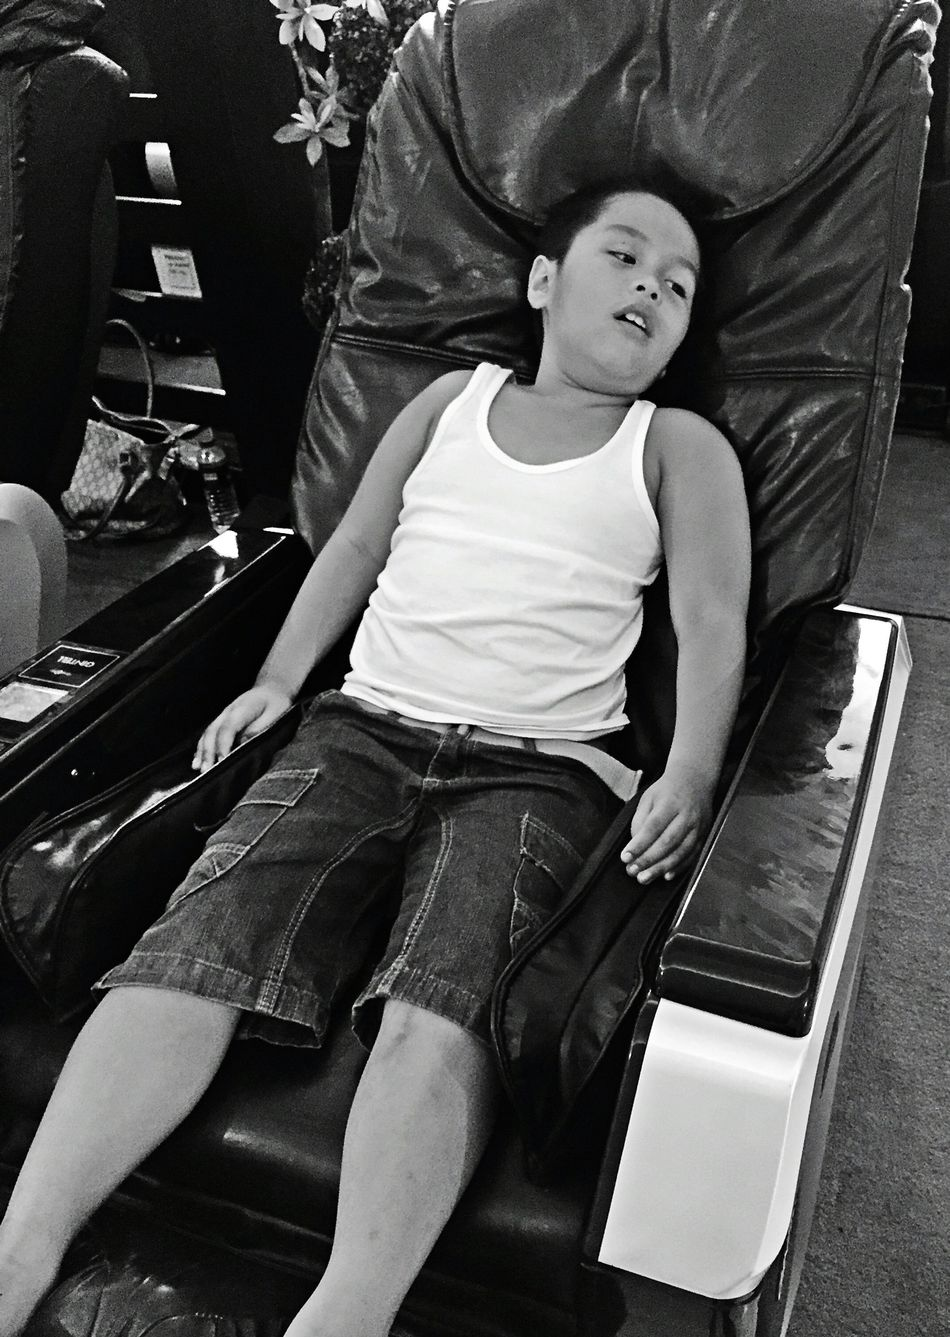 My beloved nephew enjoying the massage chair. Capture The Moment Massage Therapy Massages Massage Time Massage Chairs Faces In Places Relaxation Expression Boy Young Boy Getty X EyeEm Telling Stories Differently Human Meets Technology